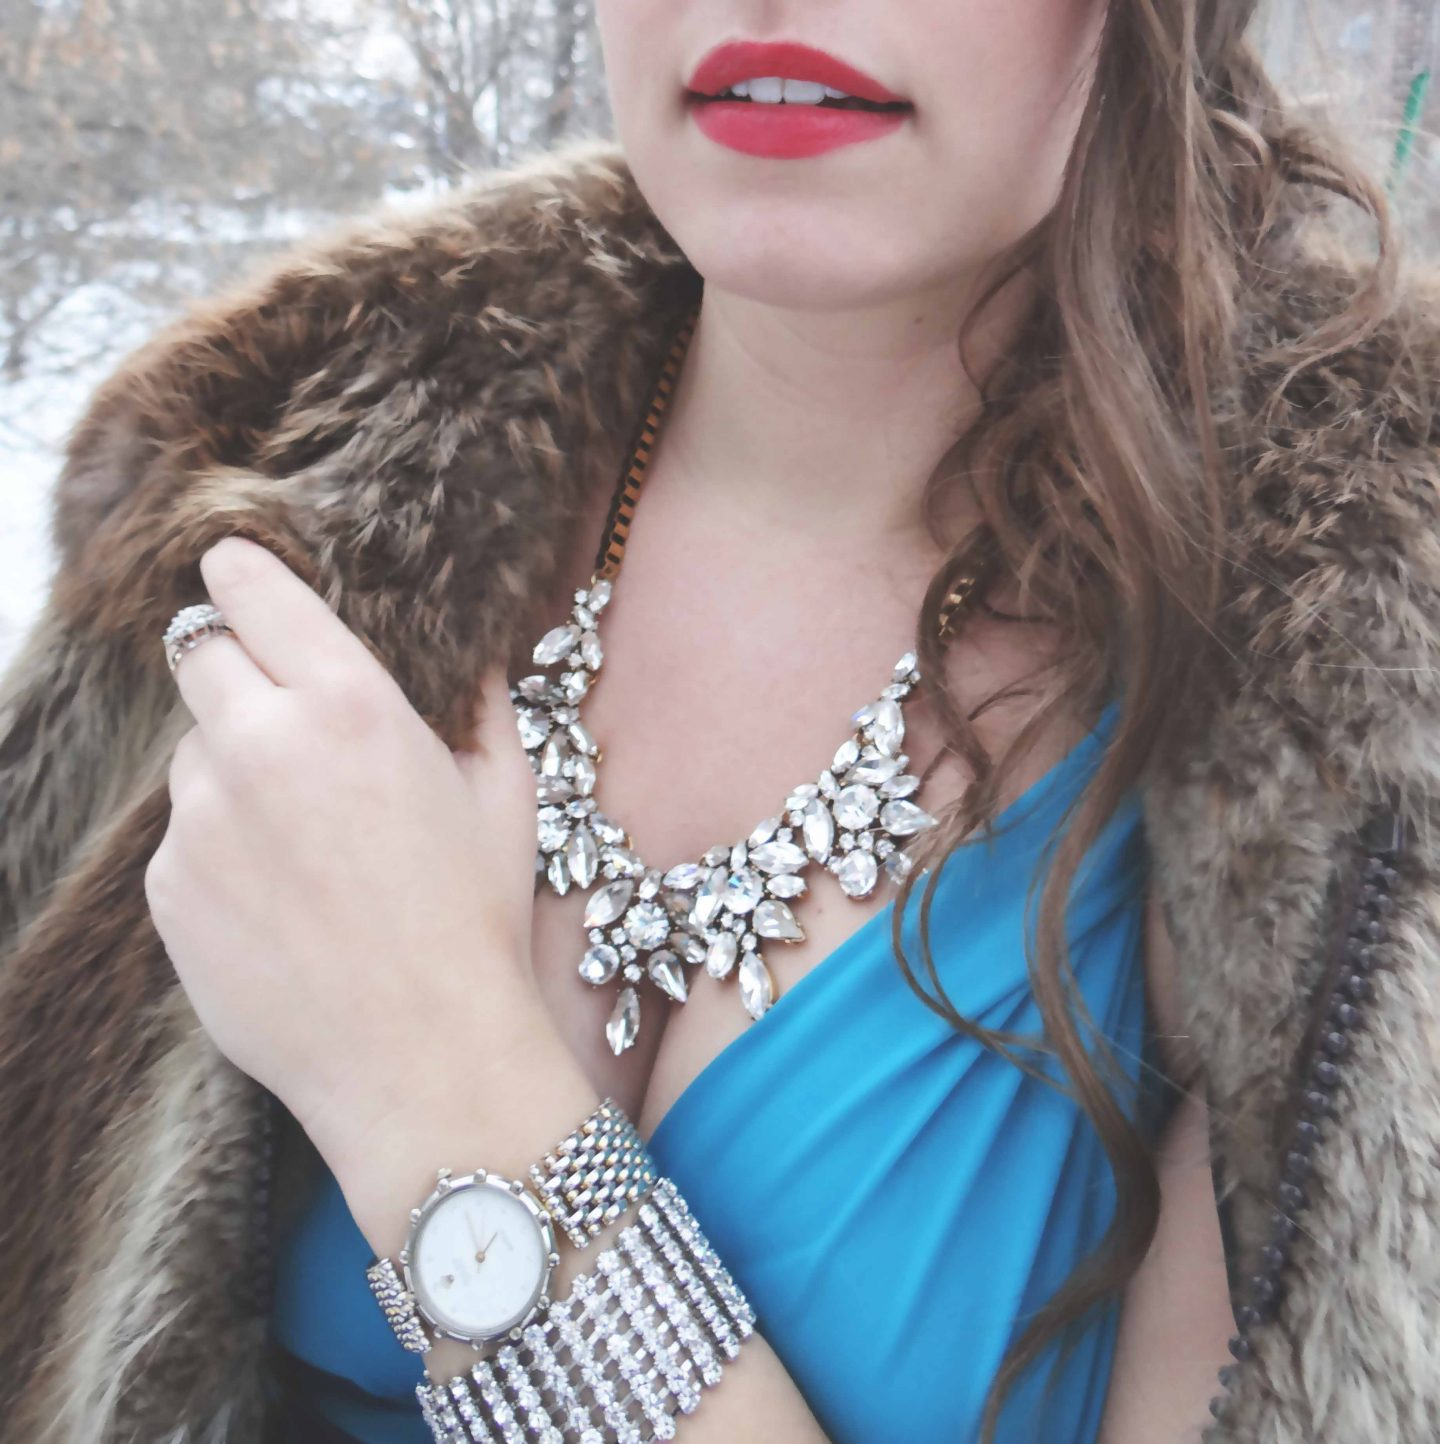 statement necklace, accessorize, Vintage, Hollywood Glamour, Winter Fashion, life and style, fashion blog, fashion, style, outfit, fashion blogger, style blogger, outfit ideas, fashion styles, Victoria Simpson, A Side of Vogue